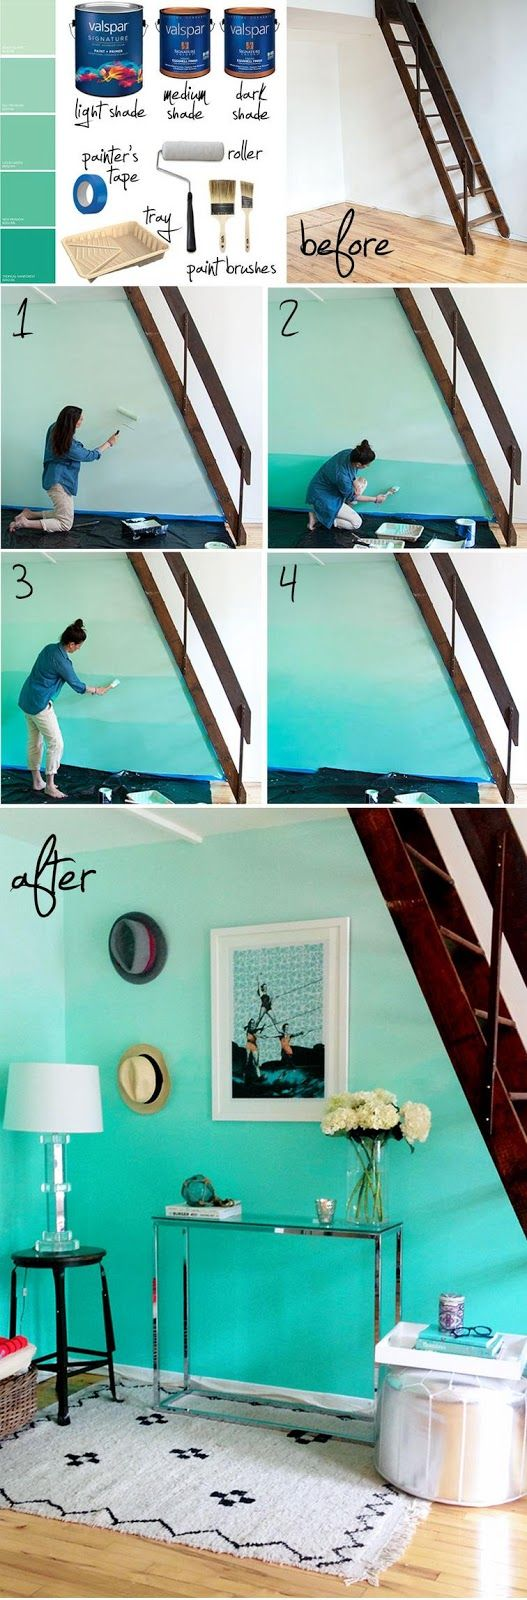 Top home decor diy ideas ceiling stylish and walls